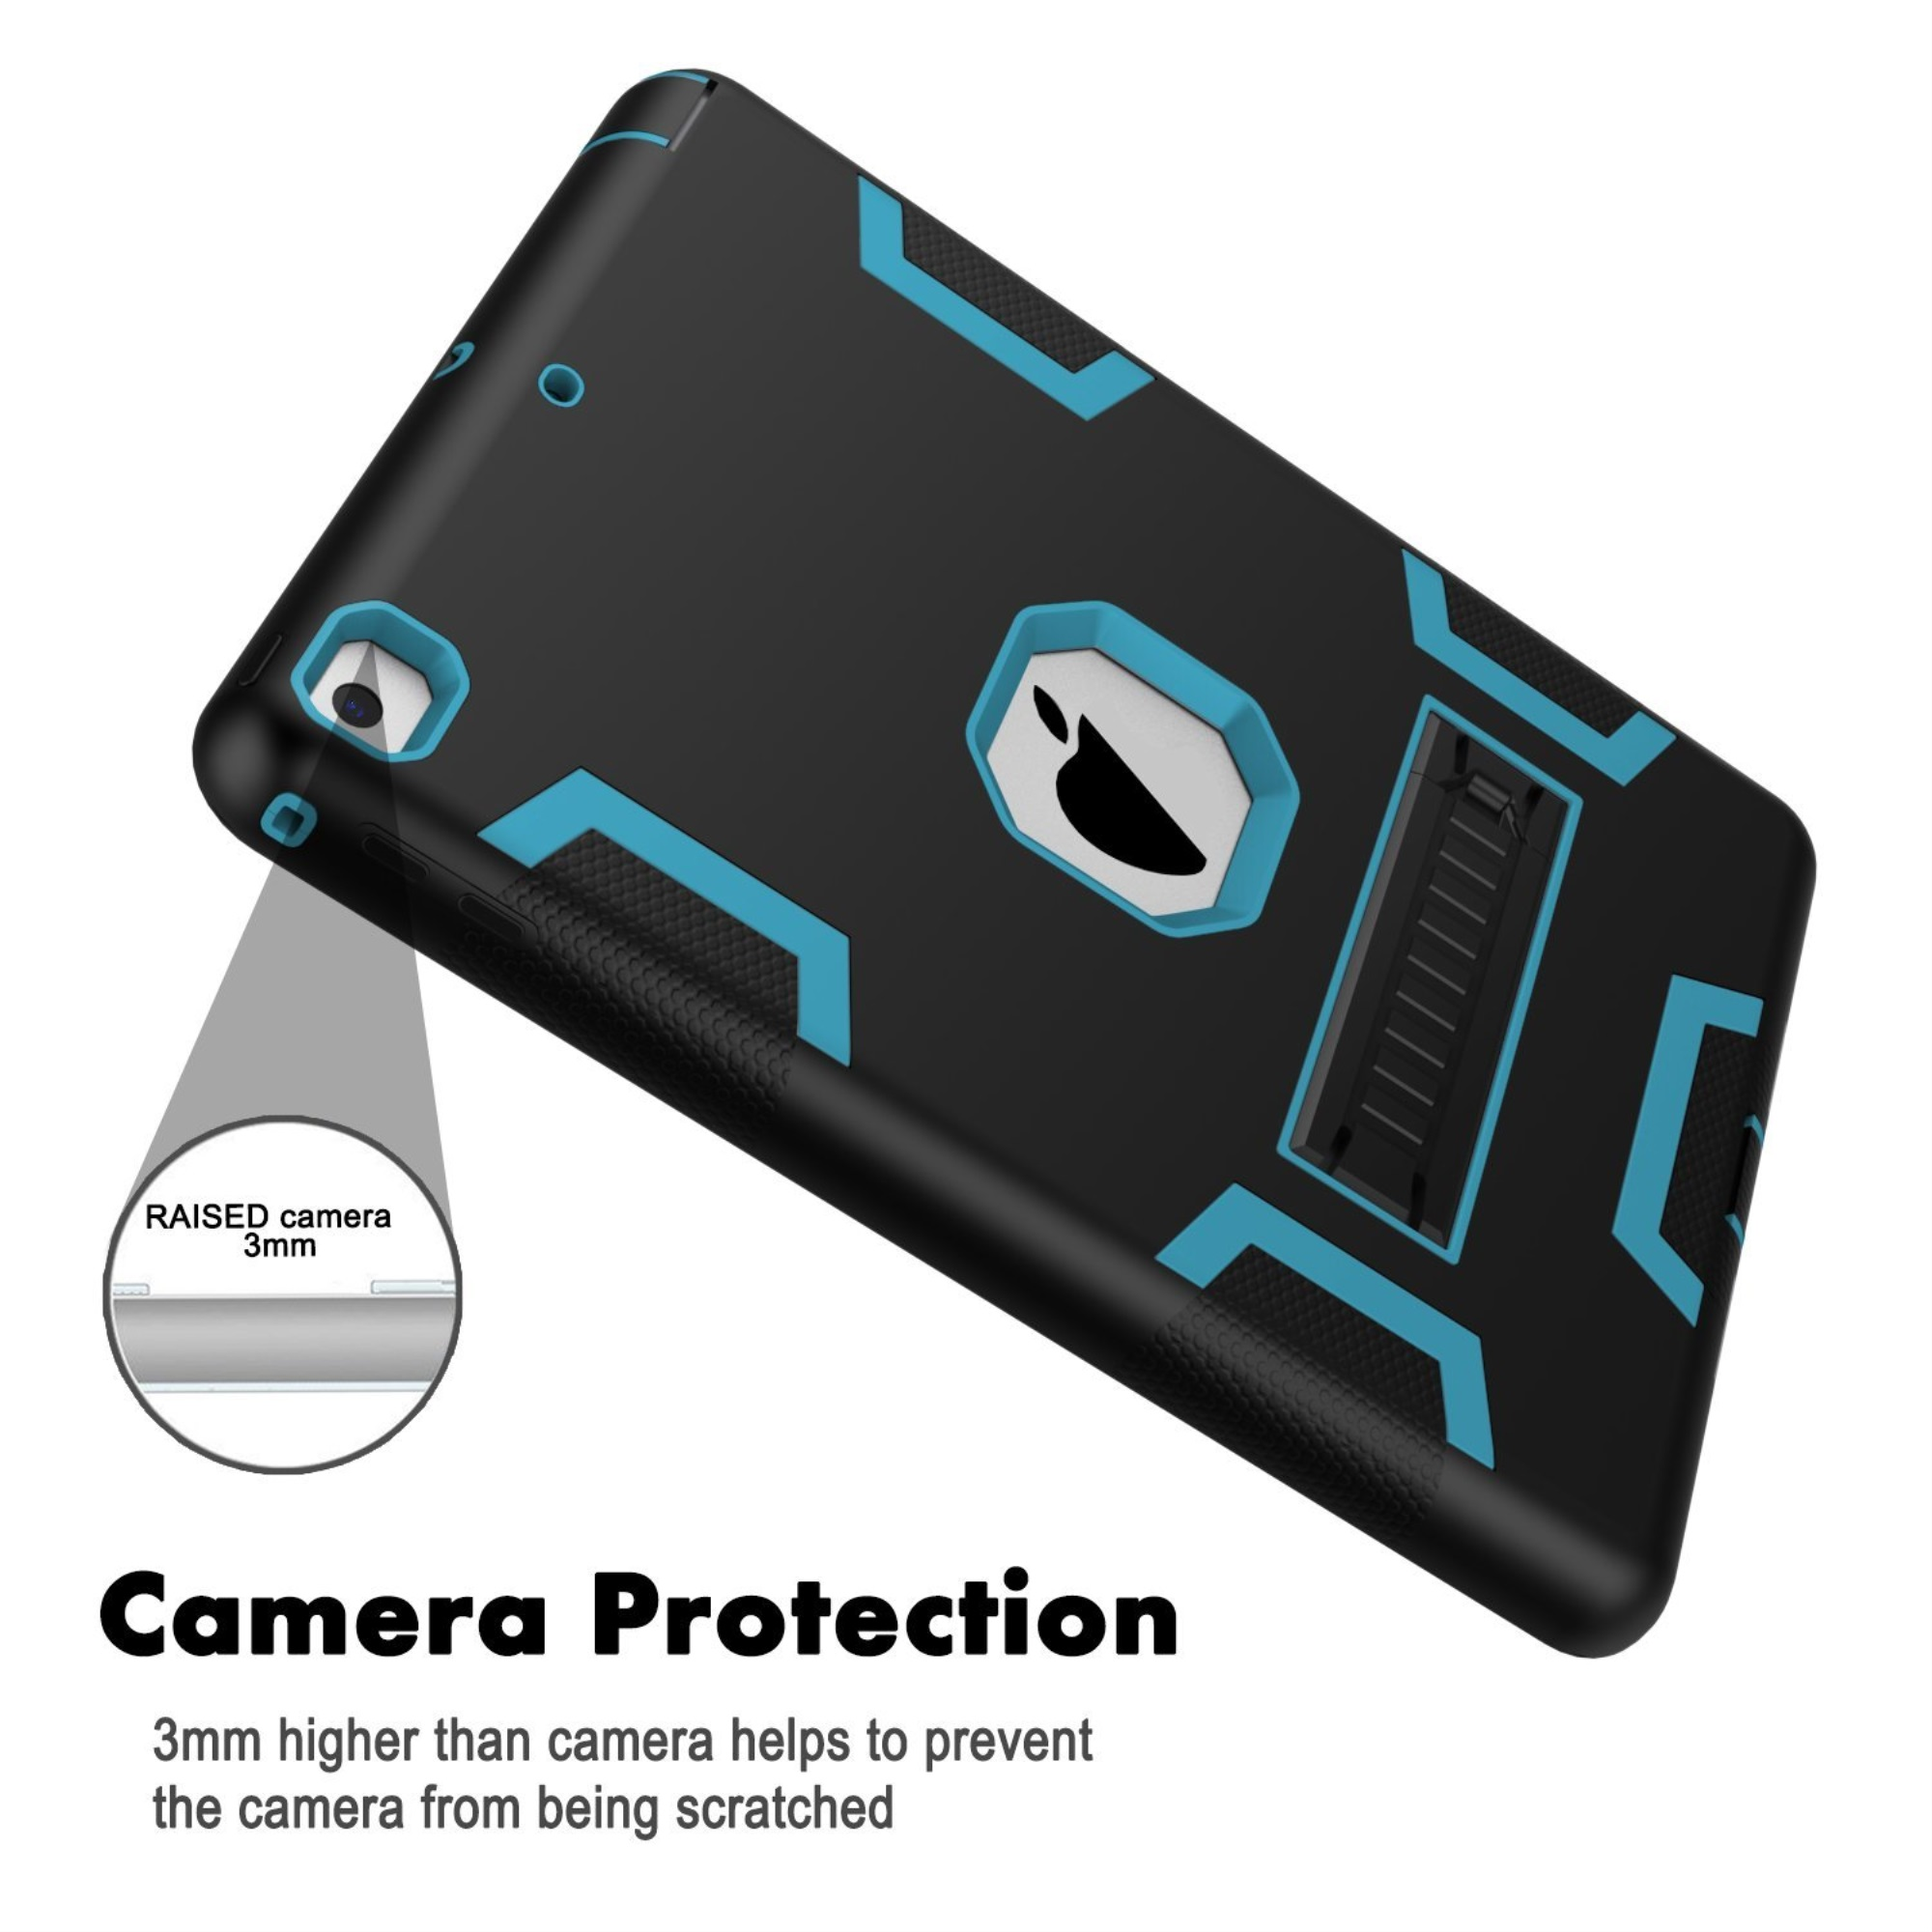 thumbnail 8 - For Apple IPad 2 A1395 / A1396 / A1397 Shockproof Duty Hard Stand Case Cover